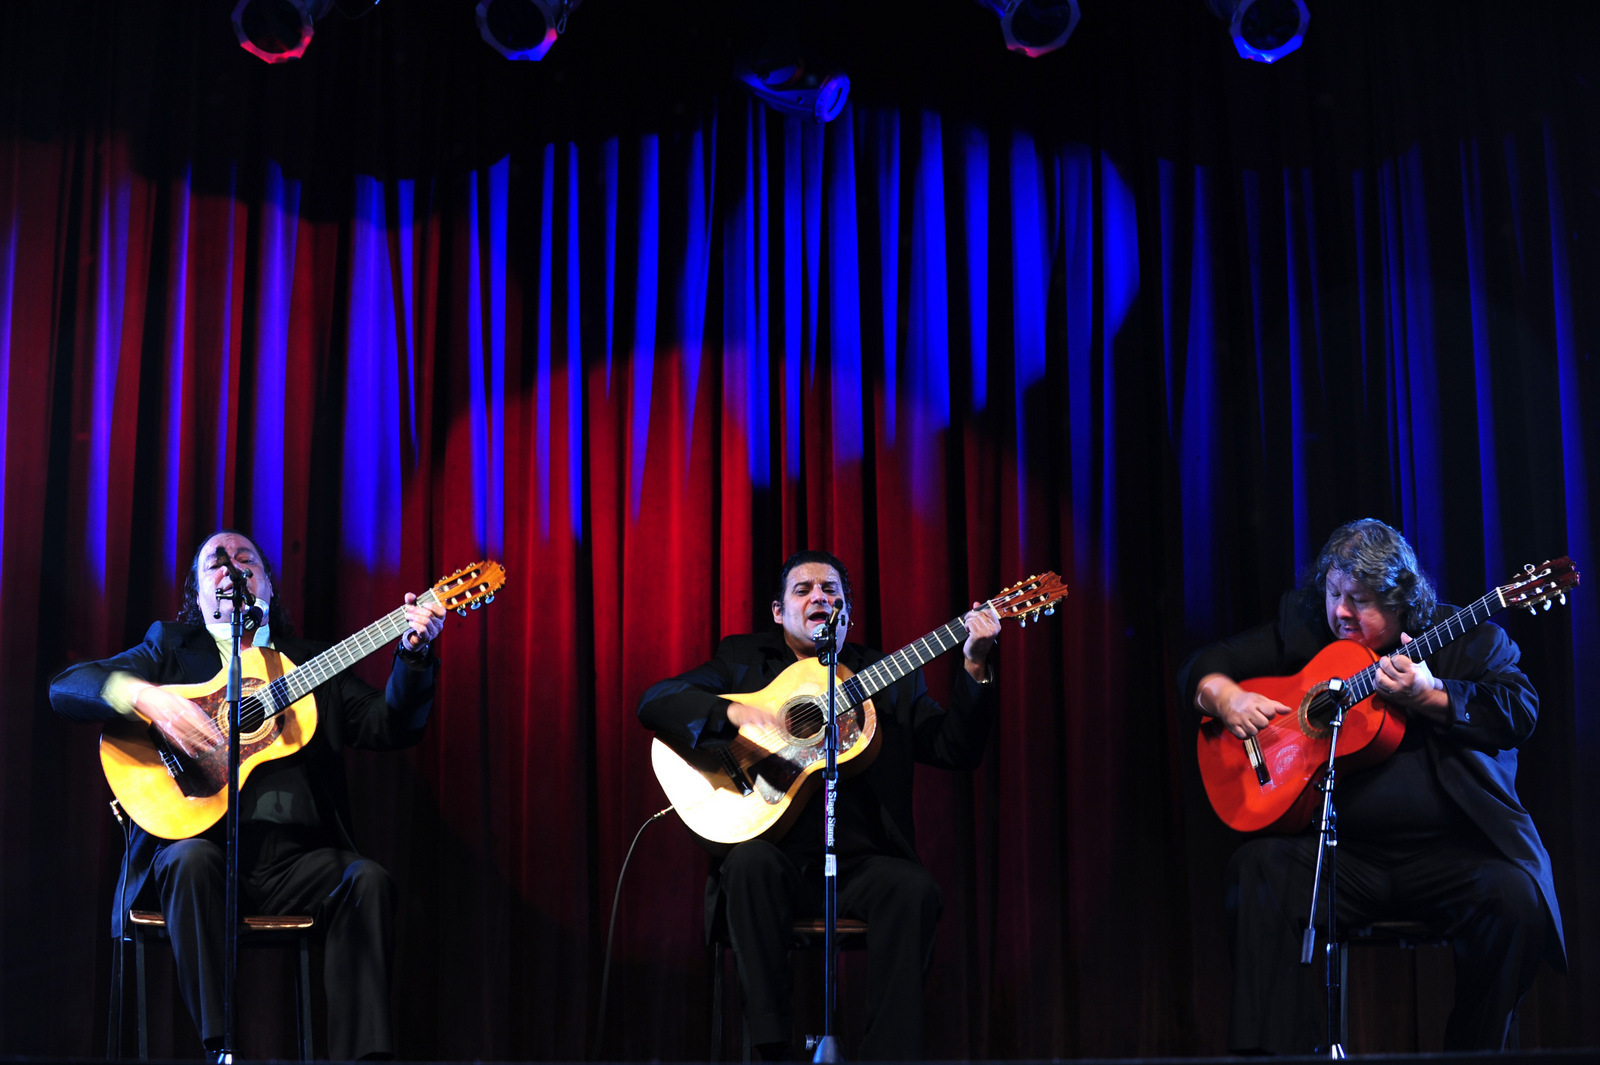 Music of The Gipsy Kings With Los Cintron